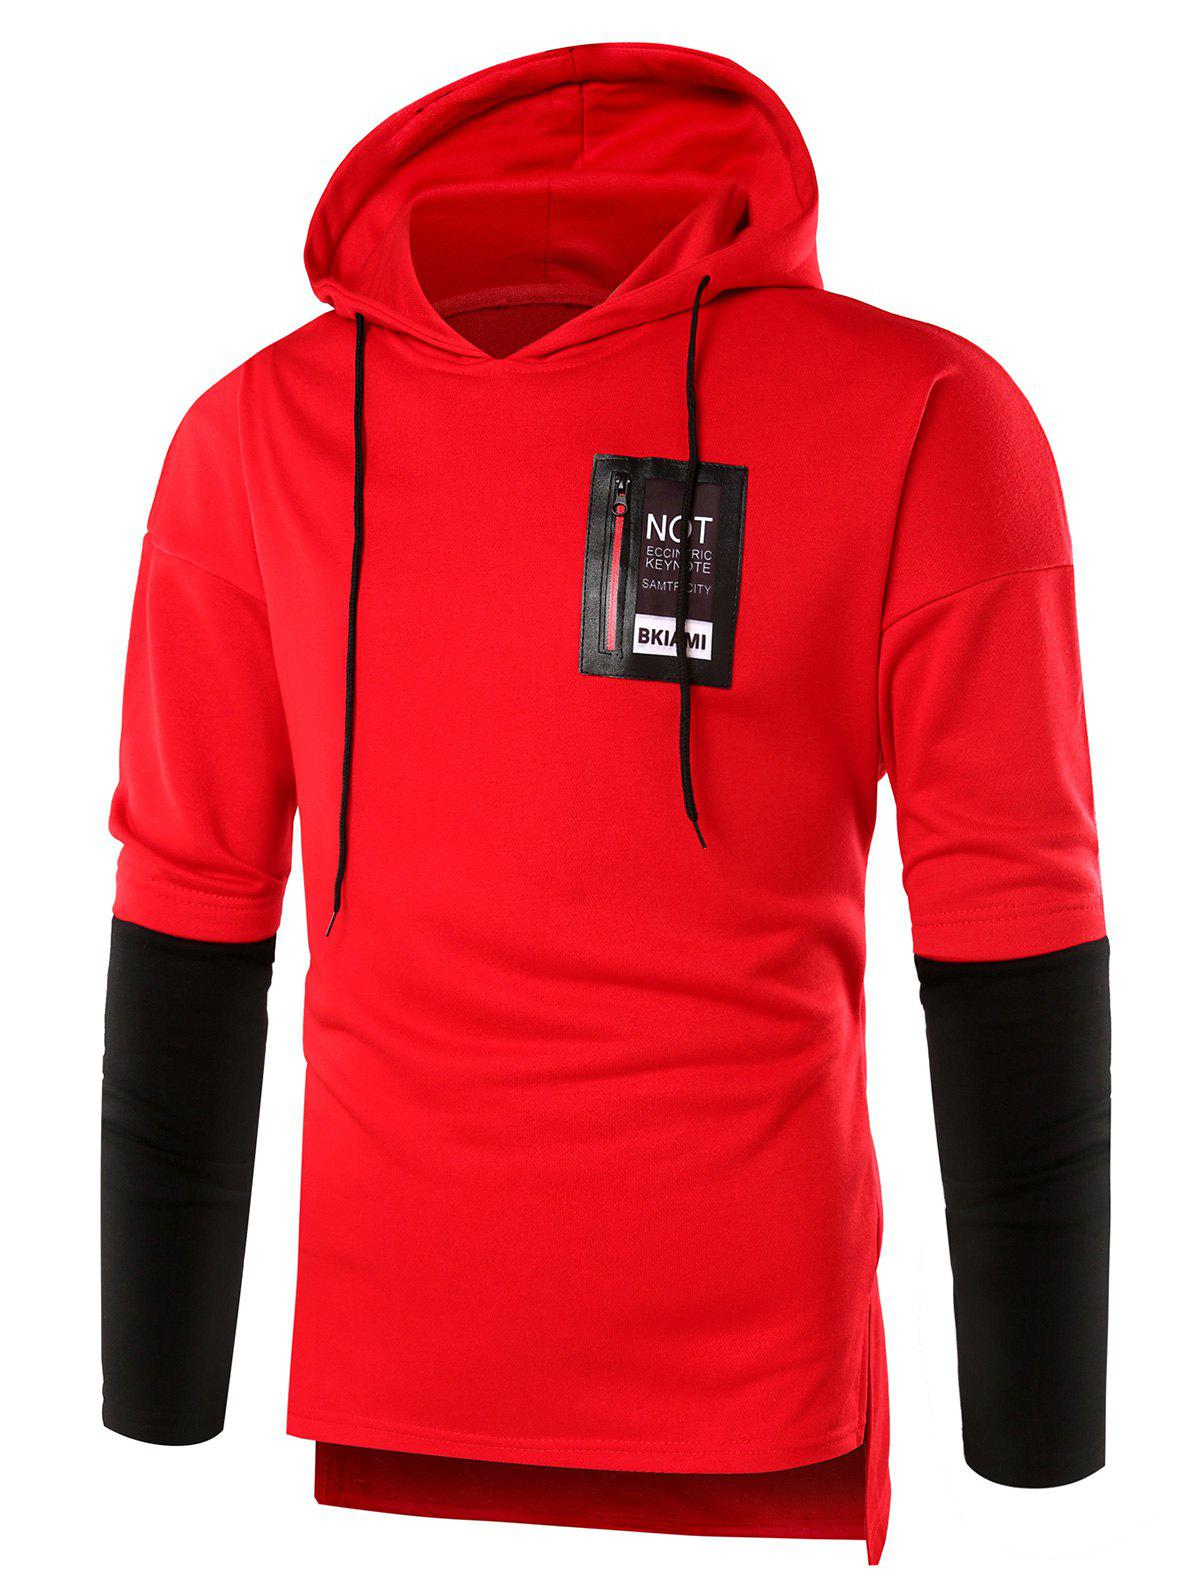 PU Leather Applique Braid Embellished Hoodie - RED 2XL